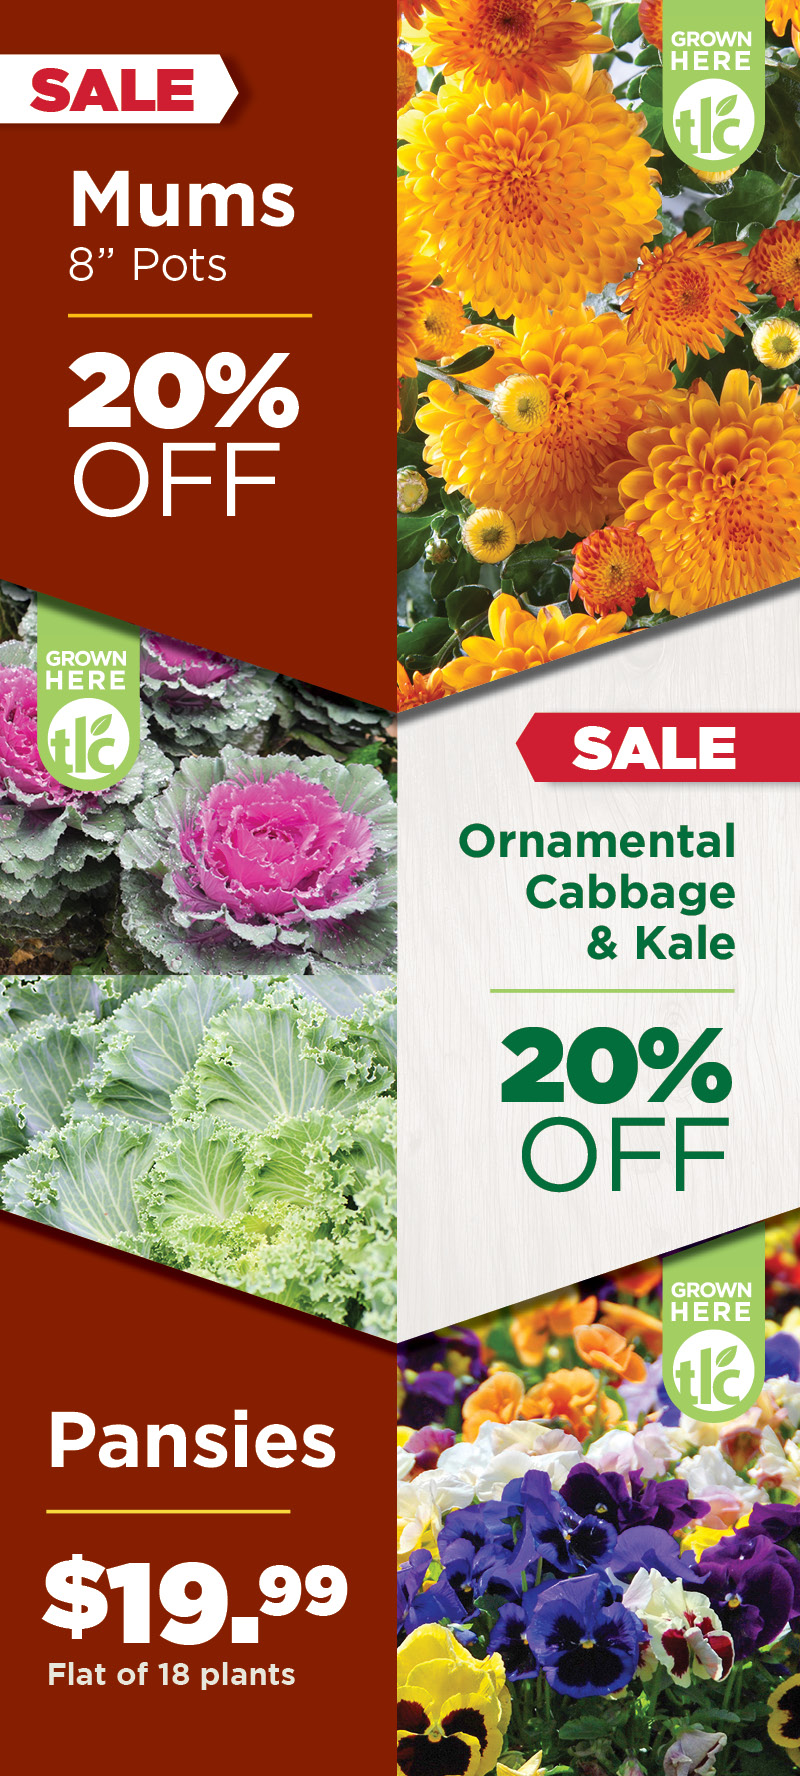 Mums | Pansies | Cabbage and Kale | Sale at TLC